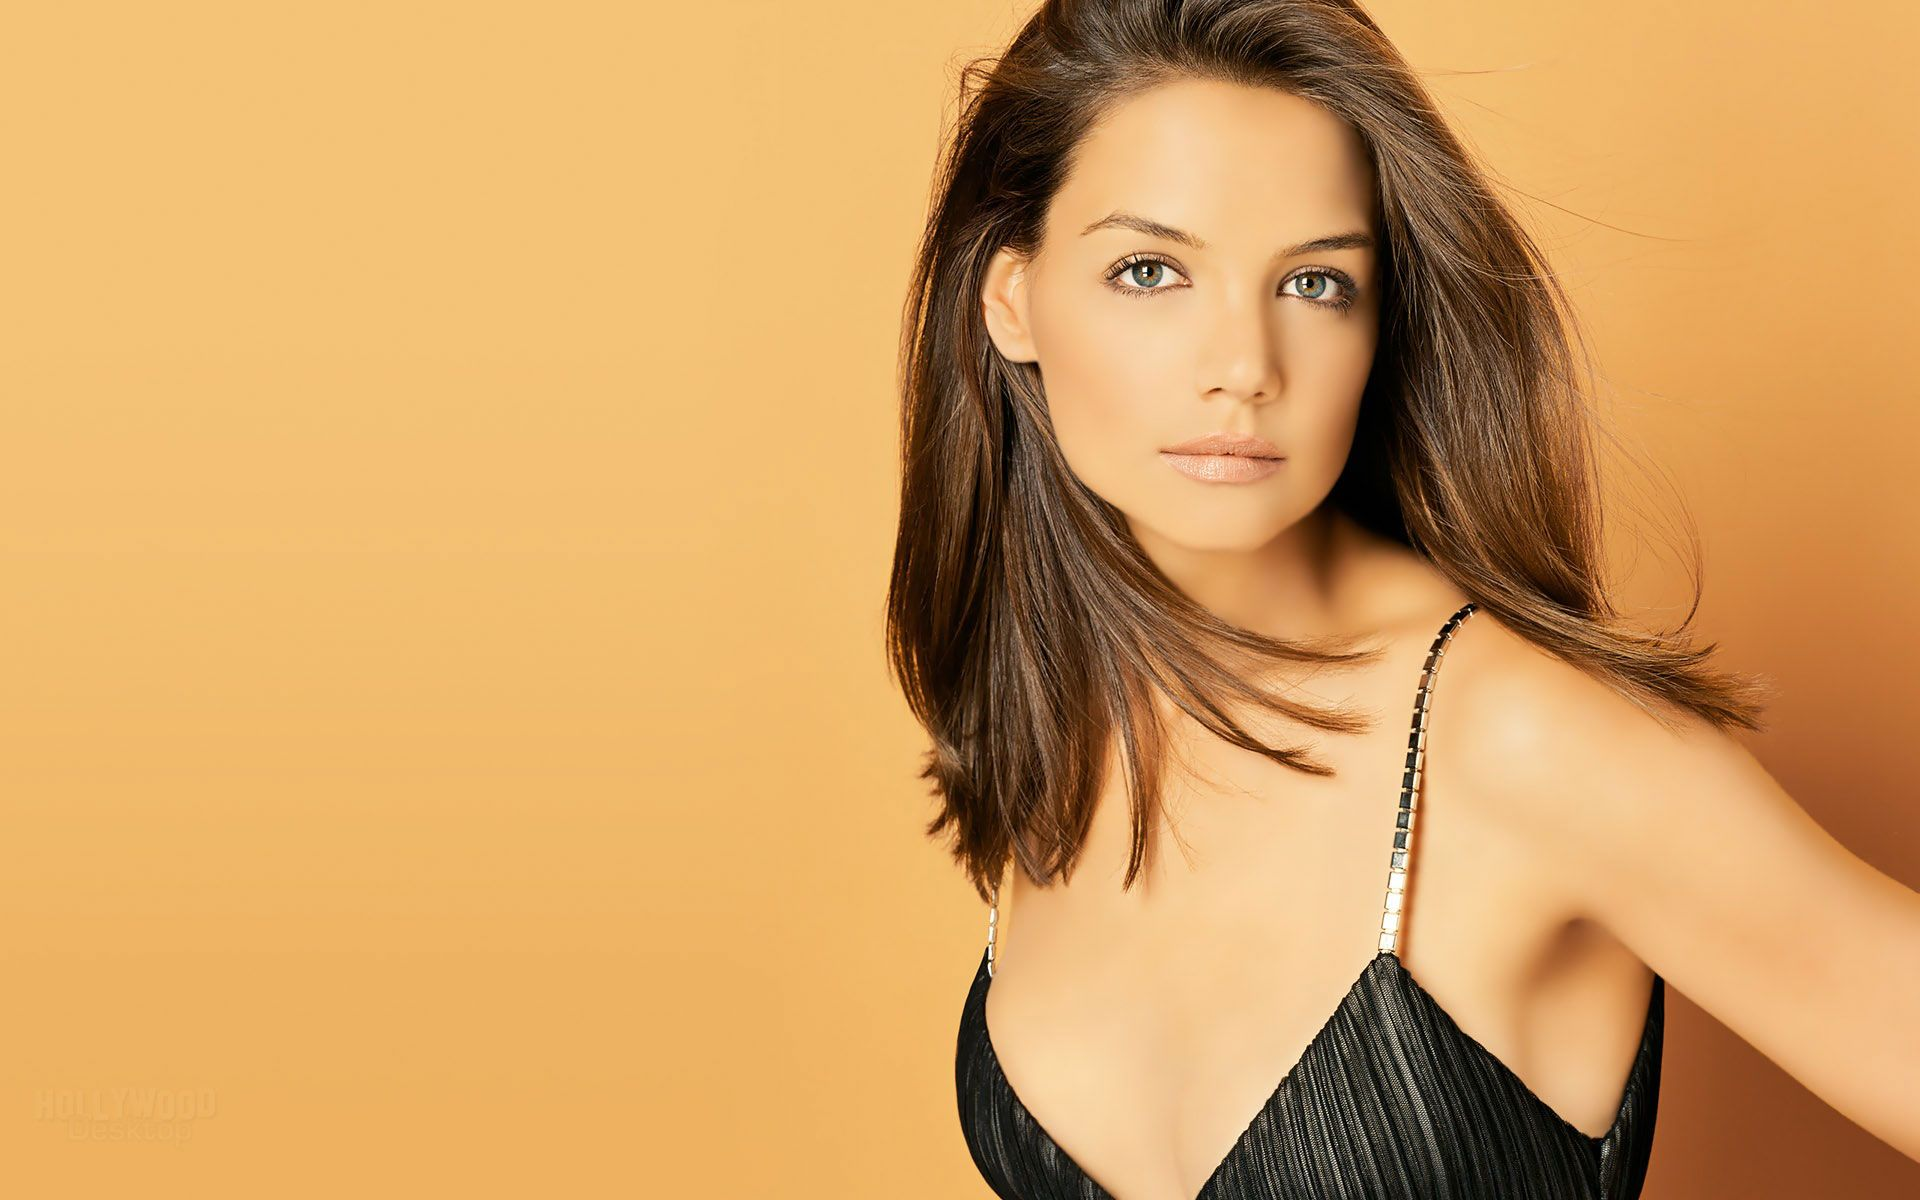 1920x1200 katie holmes Full HD Wallpaper and Background Image | 1920x1200 | ID ...